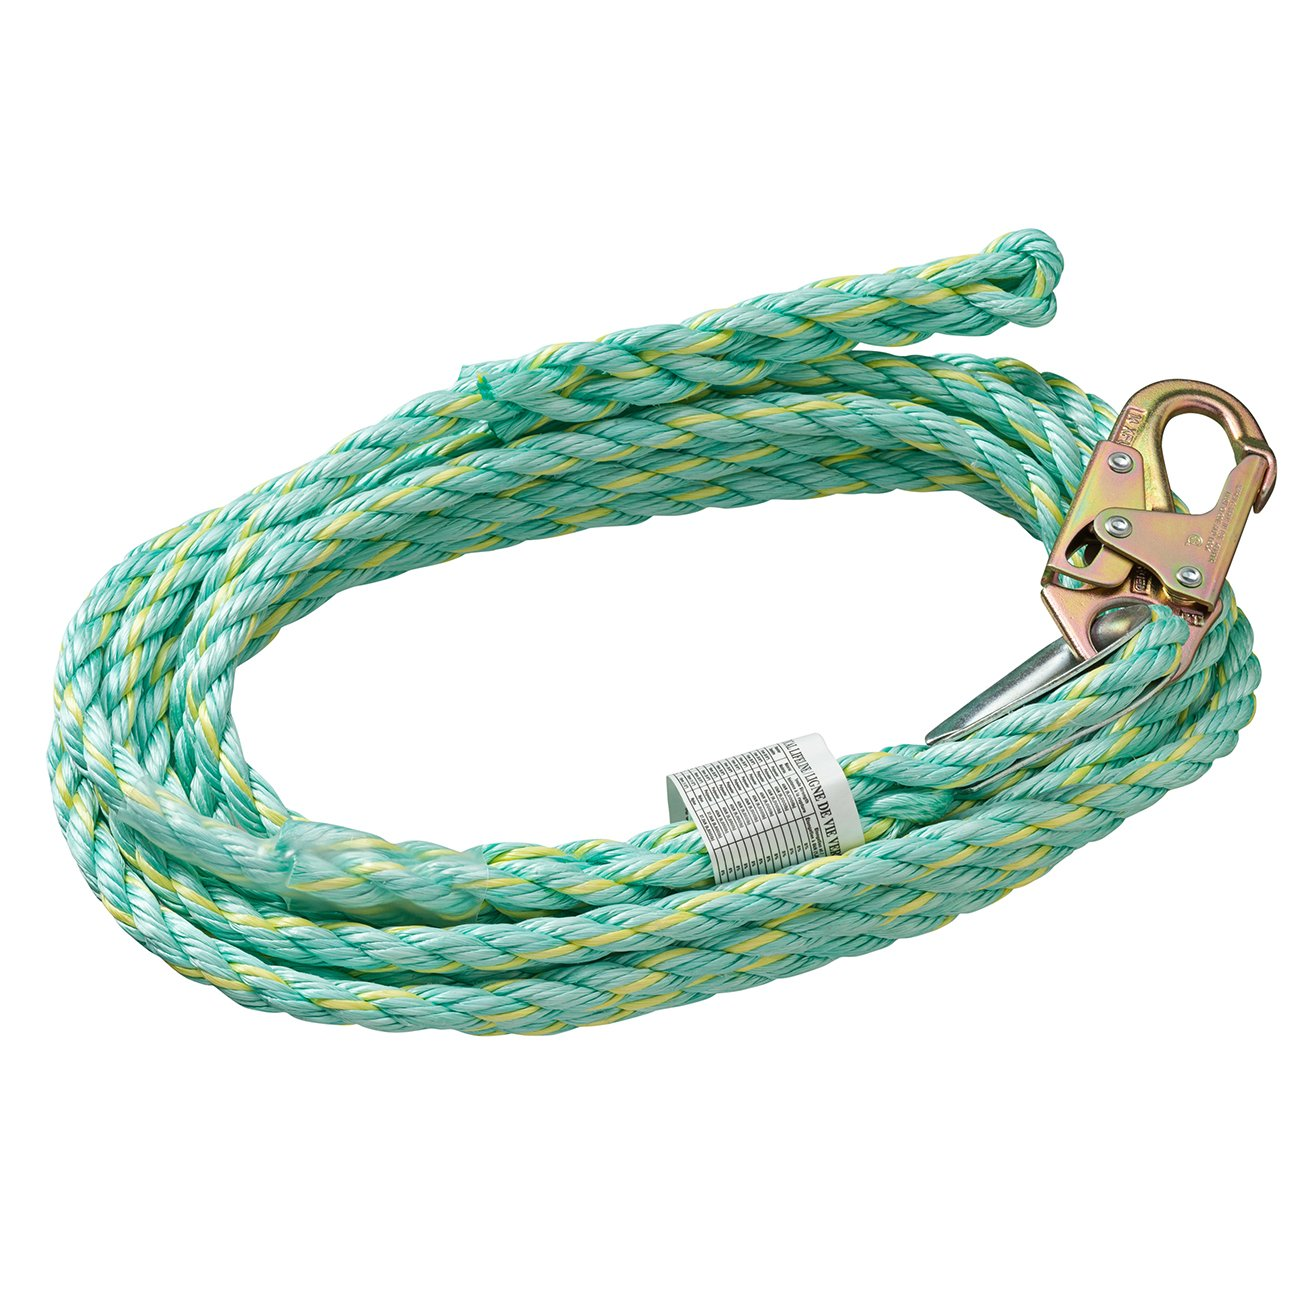 Peakworks Fall Protection V84014200 Vertical Lifeline Rope with Back Splice and Snap Hook , 200 ft. Length, Green